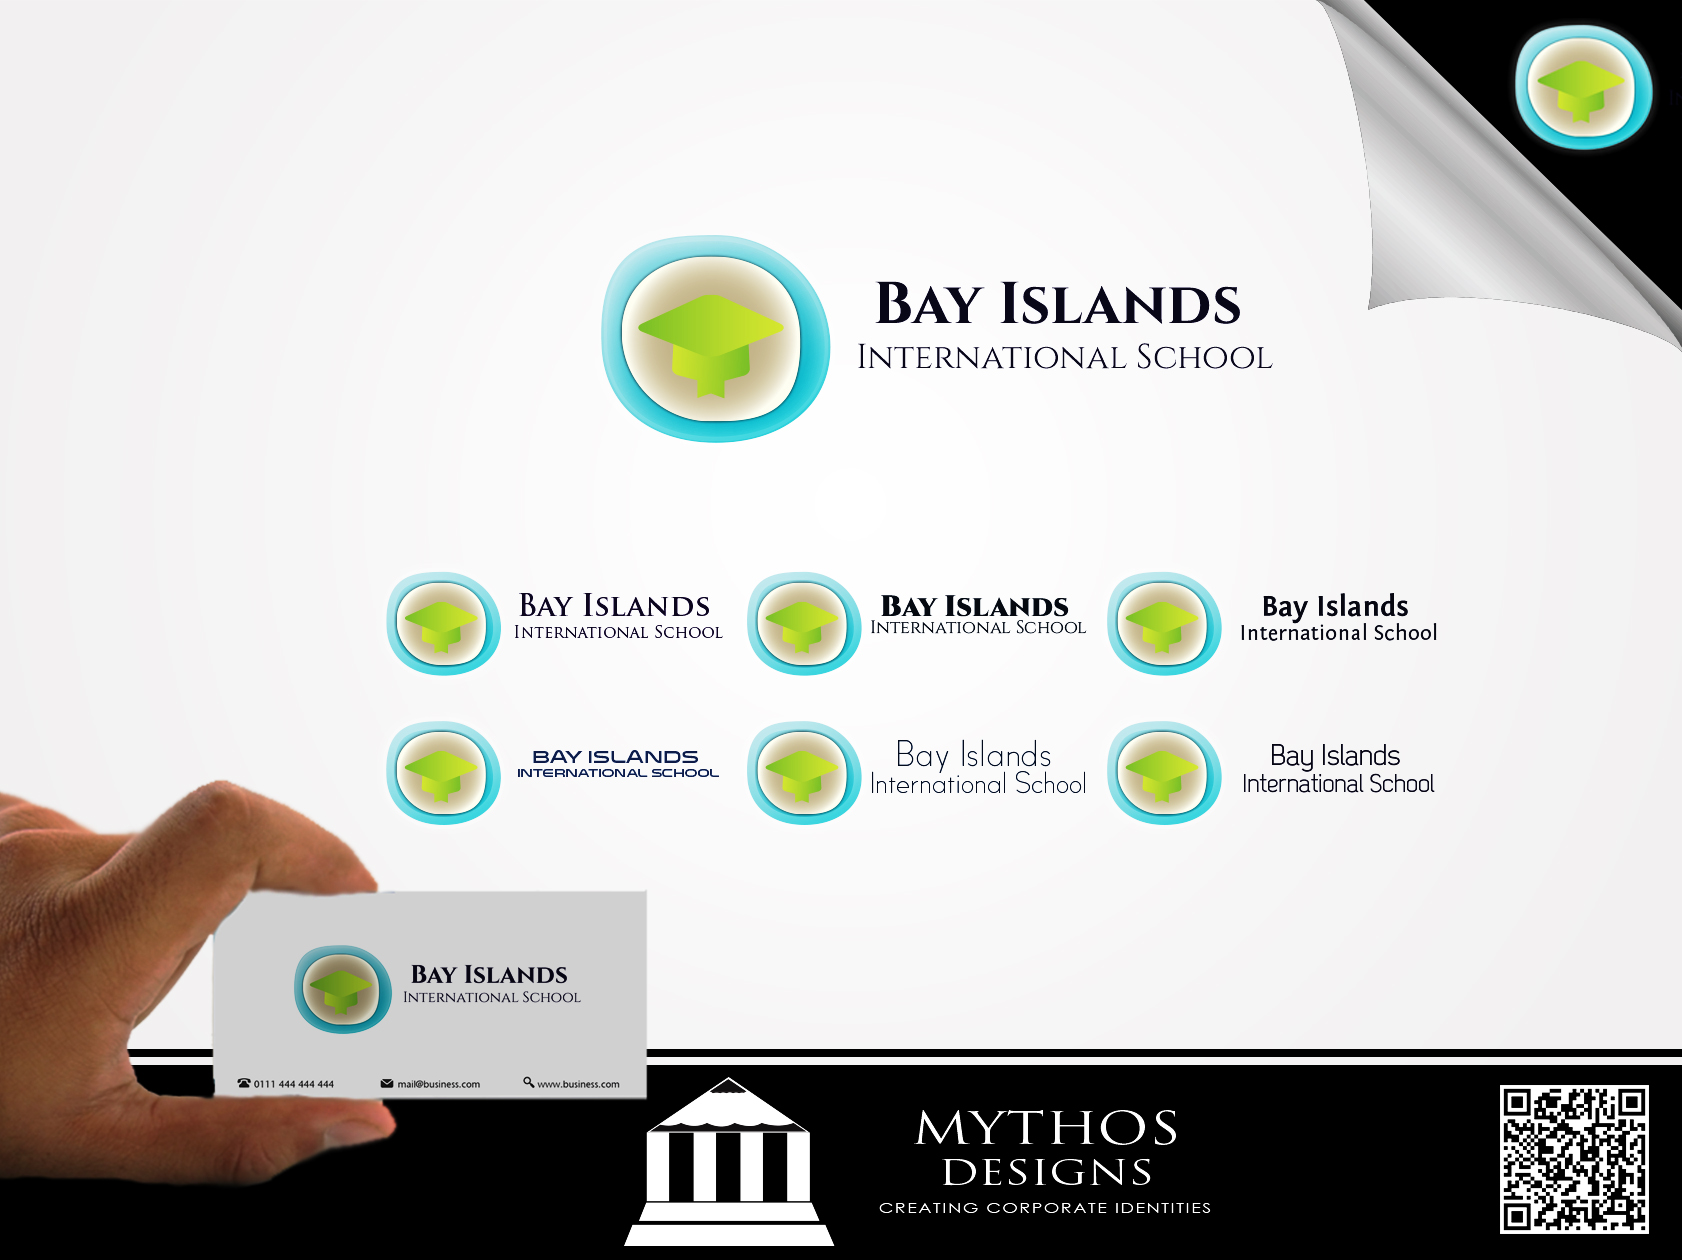 Logo Design by Mythos Designs - Entry No. 22 in the Logo Design Contest Creative Logo Design for Bay Islands International School.